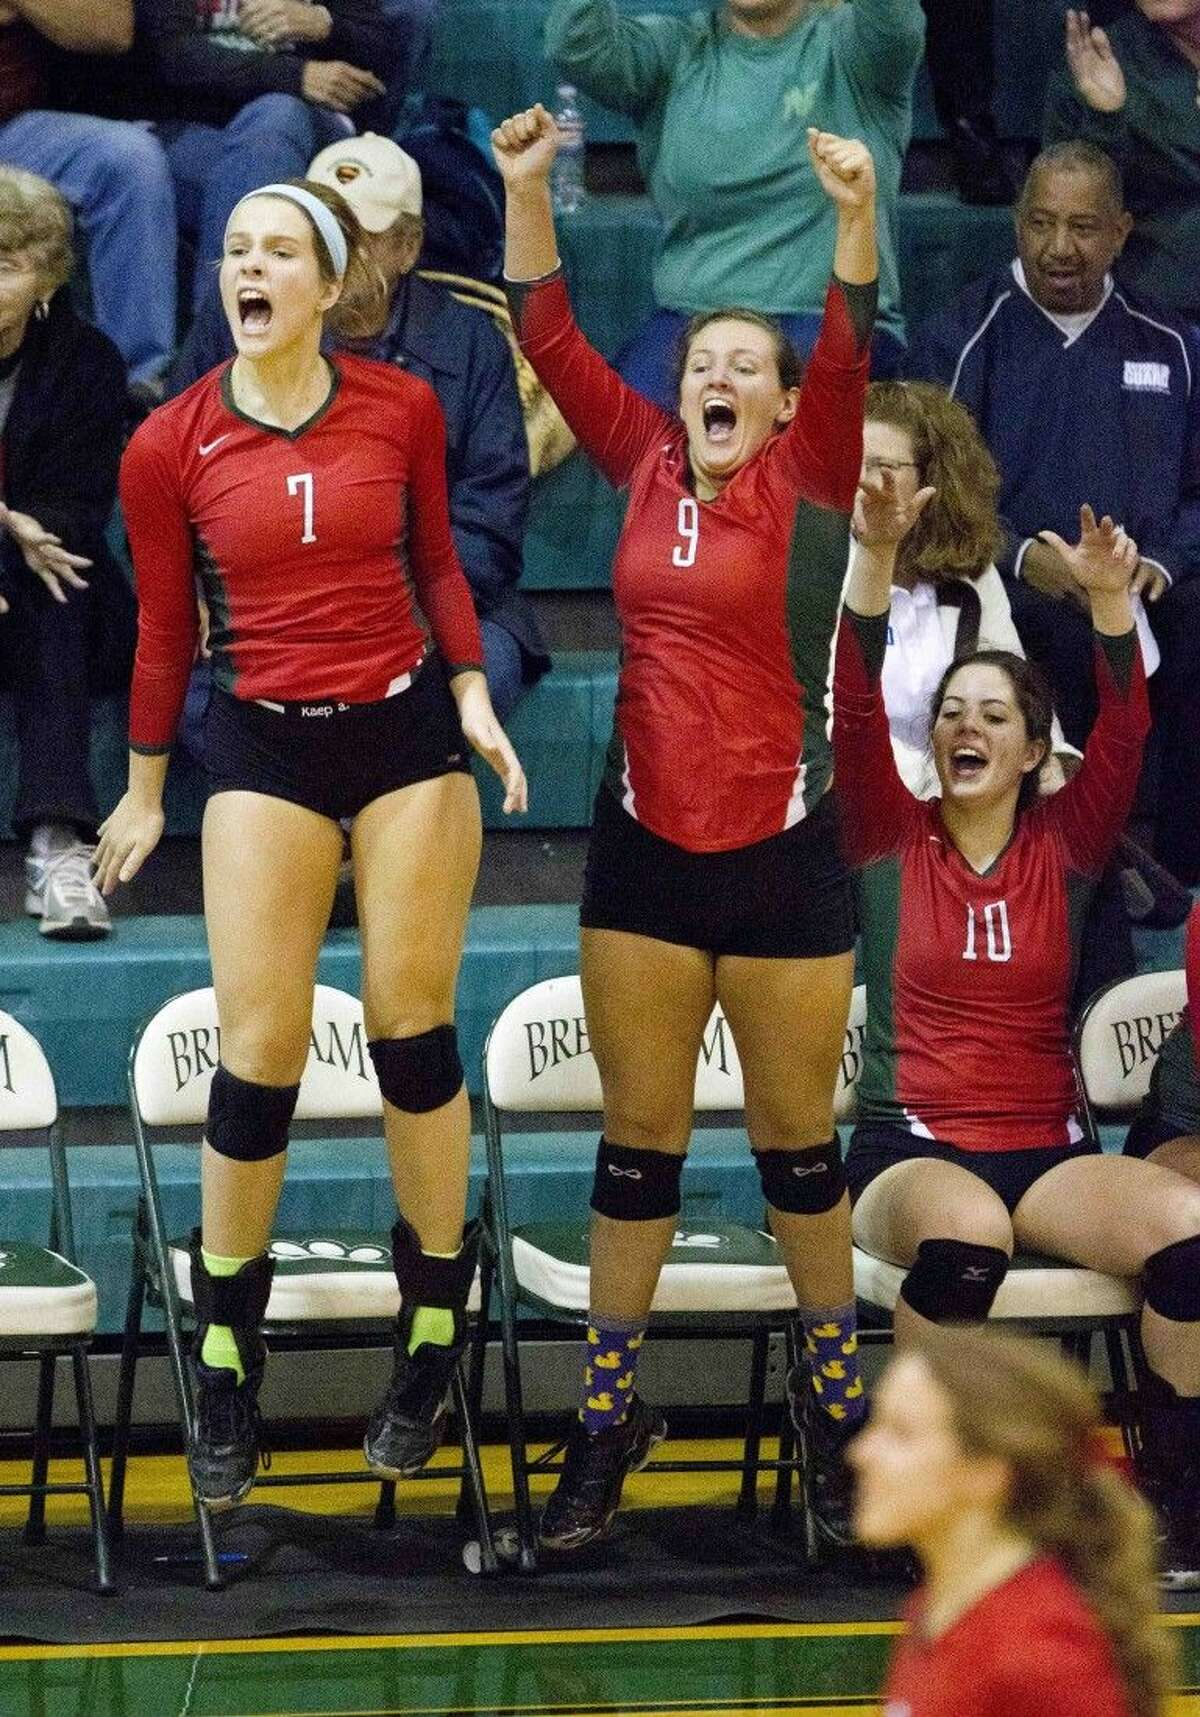 From left, The Woodlands' Hannah Hickman, Grey Kennedy and Bella Pinton celebrate a point during a Region II-6A quarterfinal volleyball match against Round Rock Westwood on Tuesday at Brenham High School. To view or purchase this photo and others like it, visit HCNpics.com.